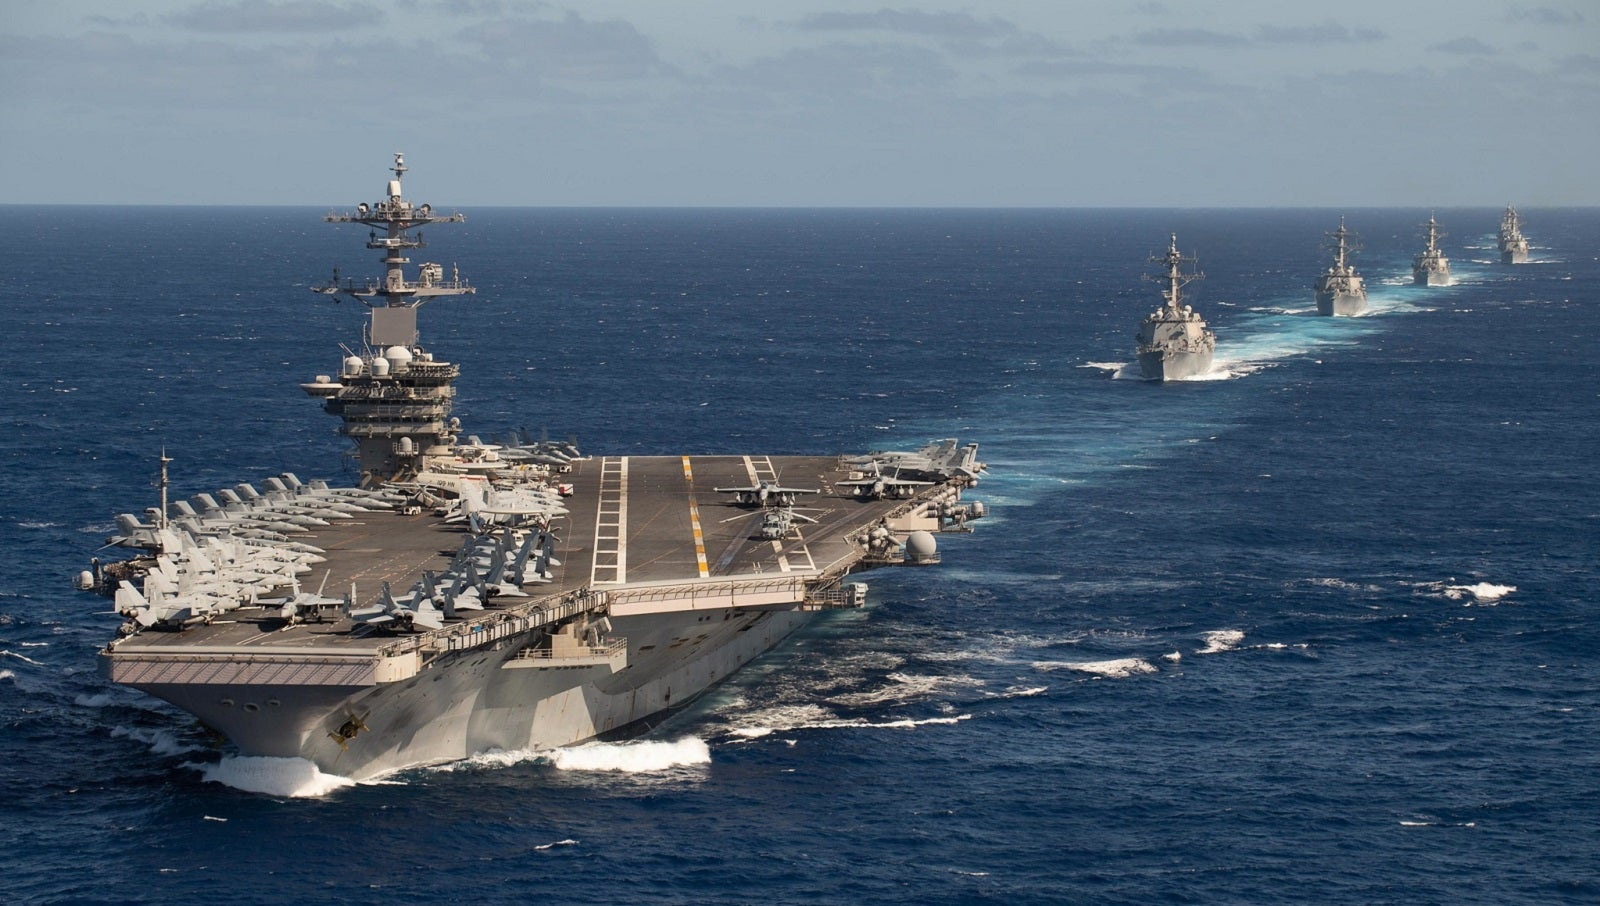 13 sailors on the USS Theodore Roosevelt test positive for COVID-19 after recovering from the virus